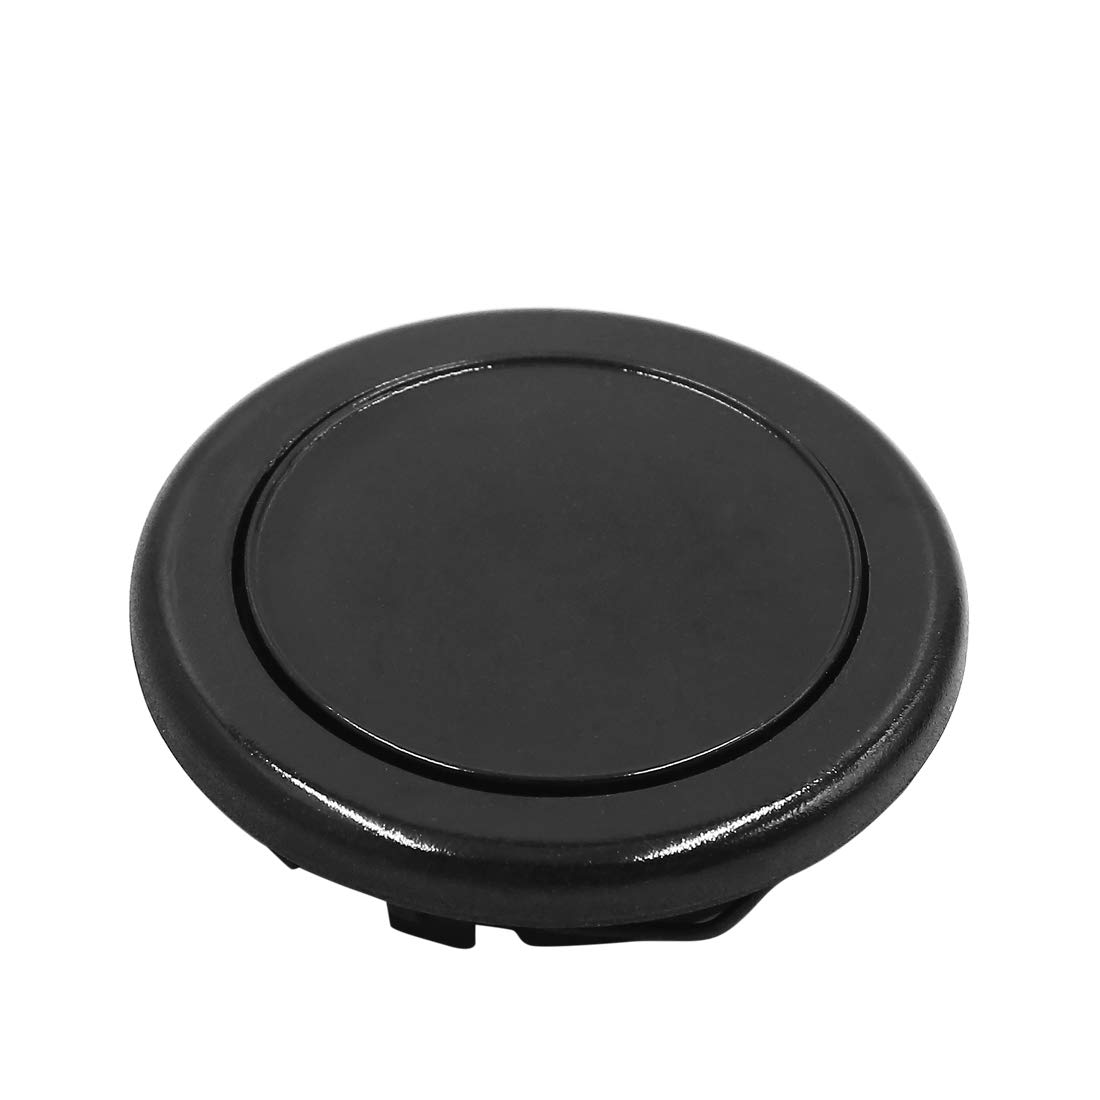 Uxcell a18070400ux0011 Steering Wheel Horn Button Unknown